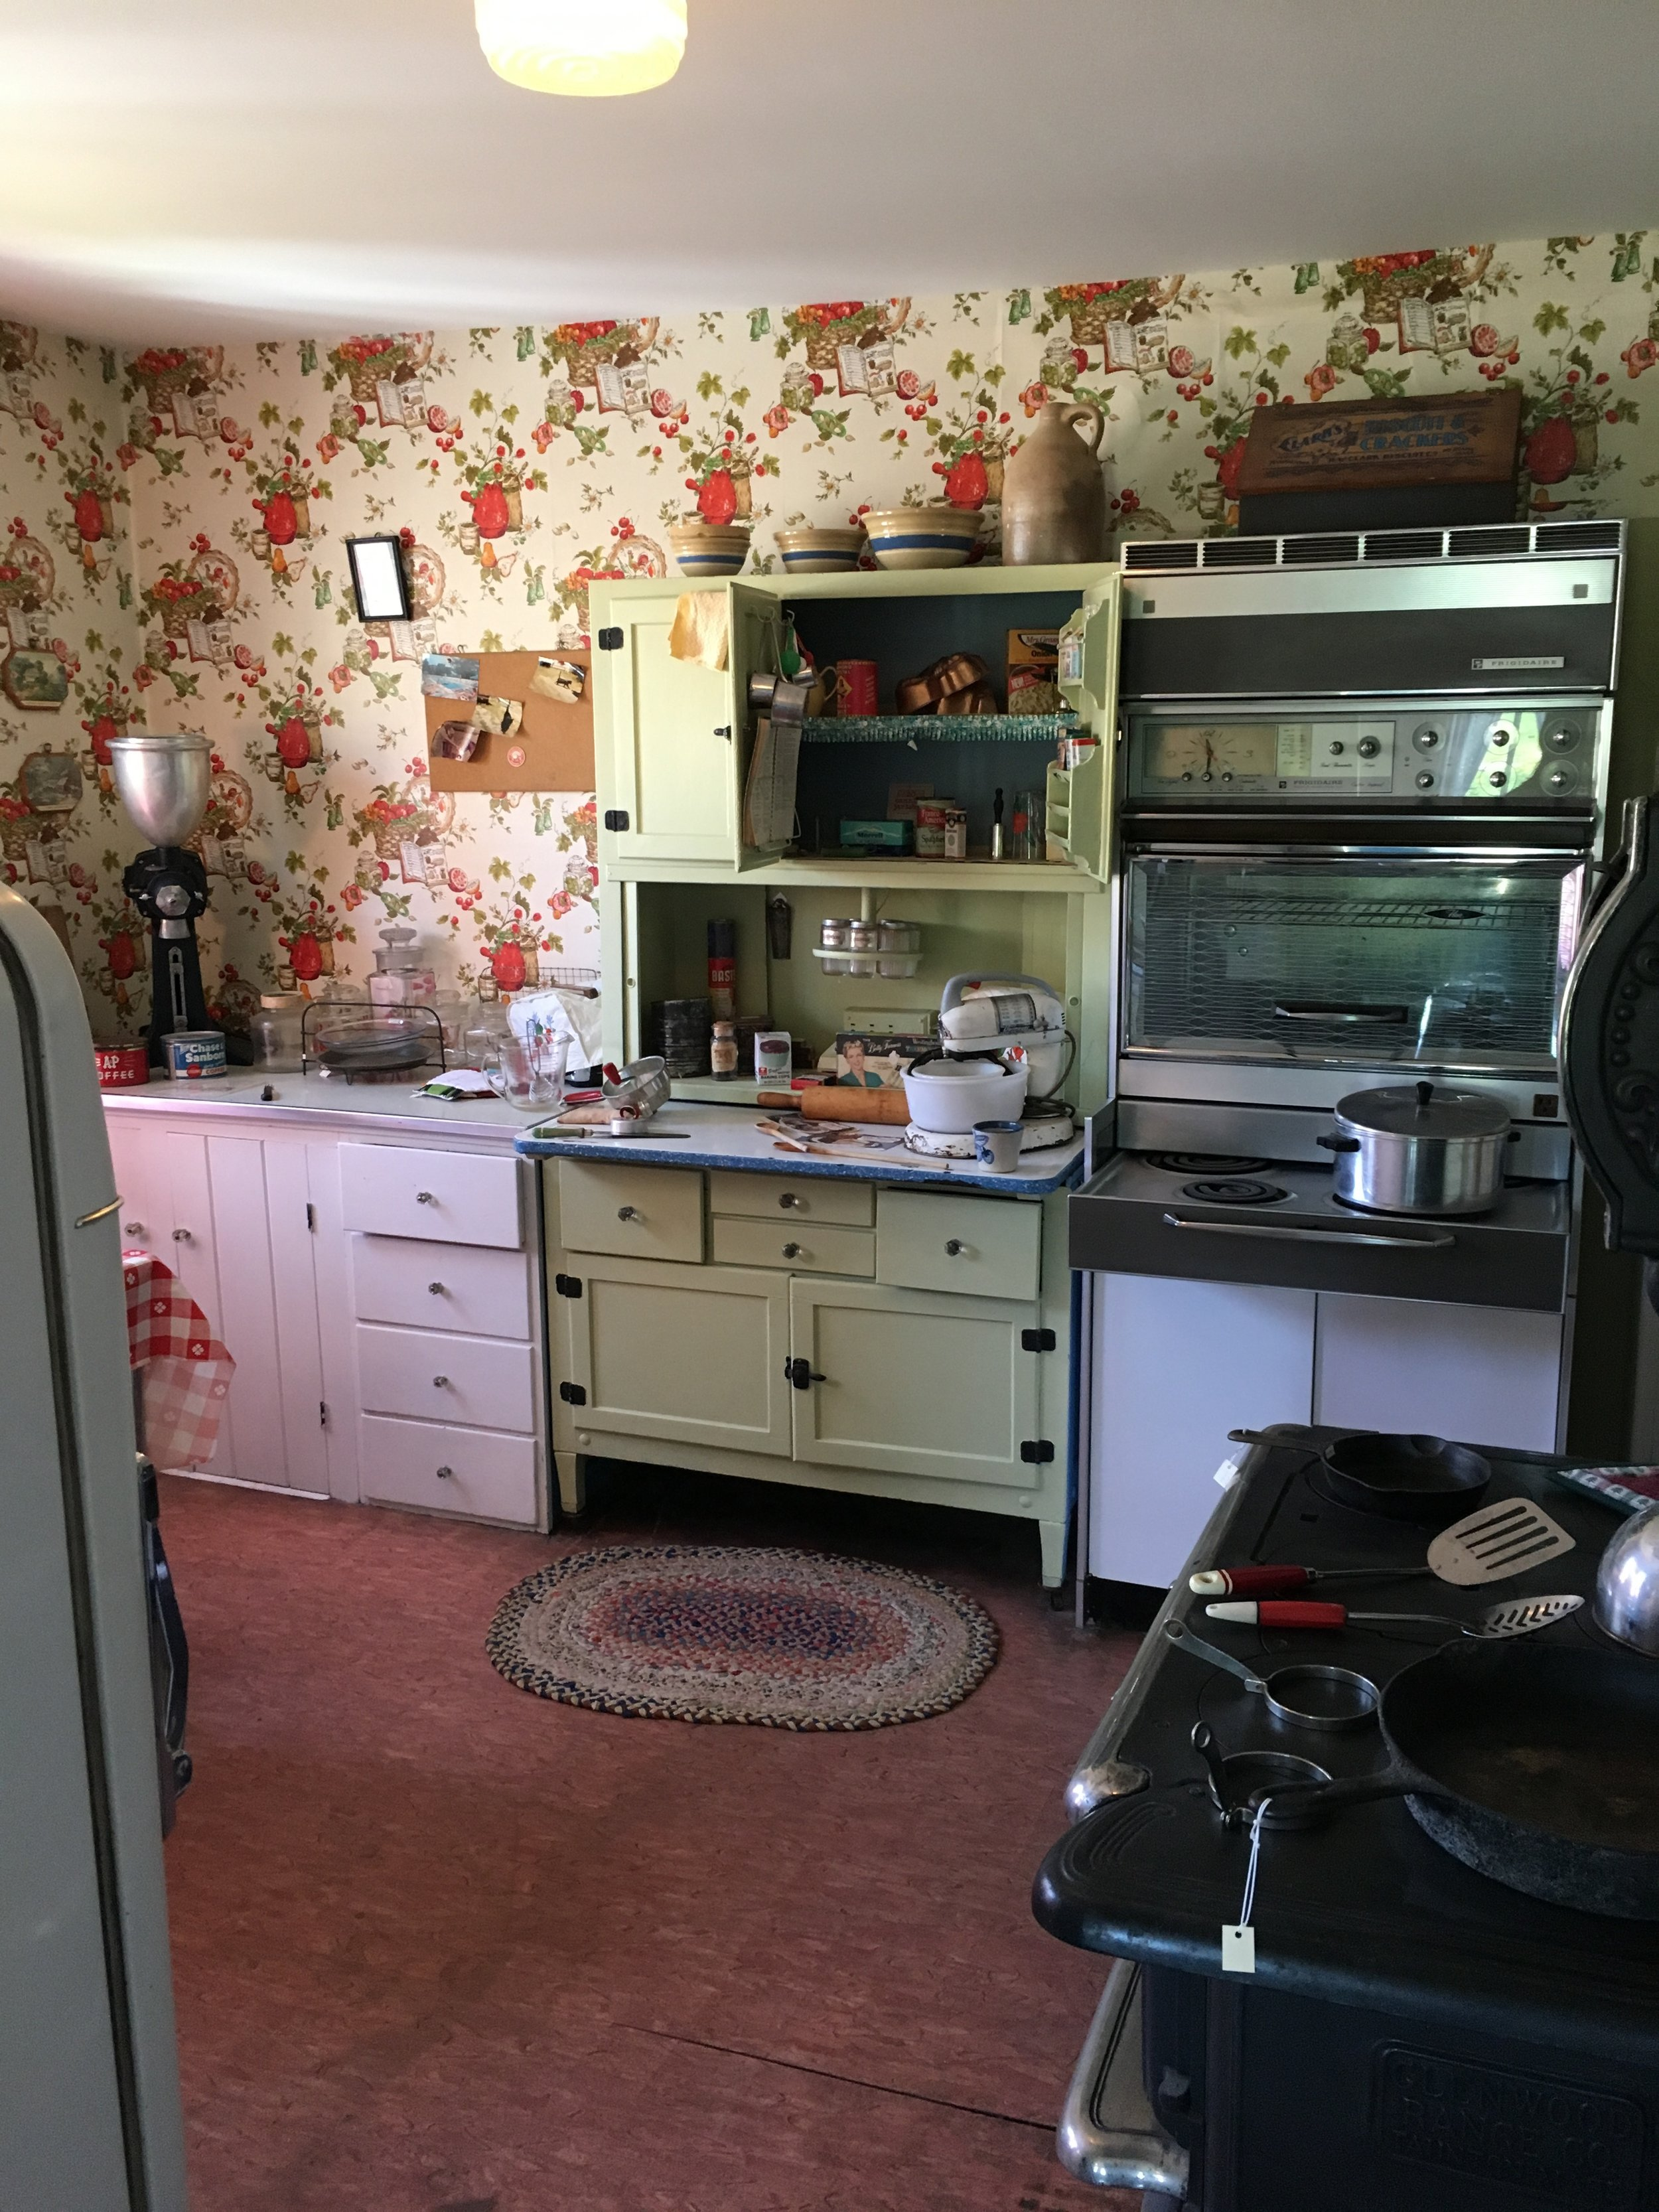 Newer kitchen of a later generation